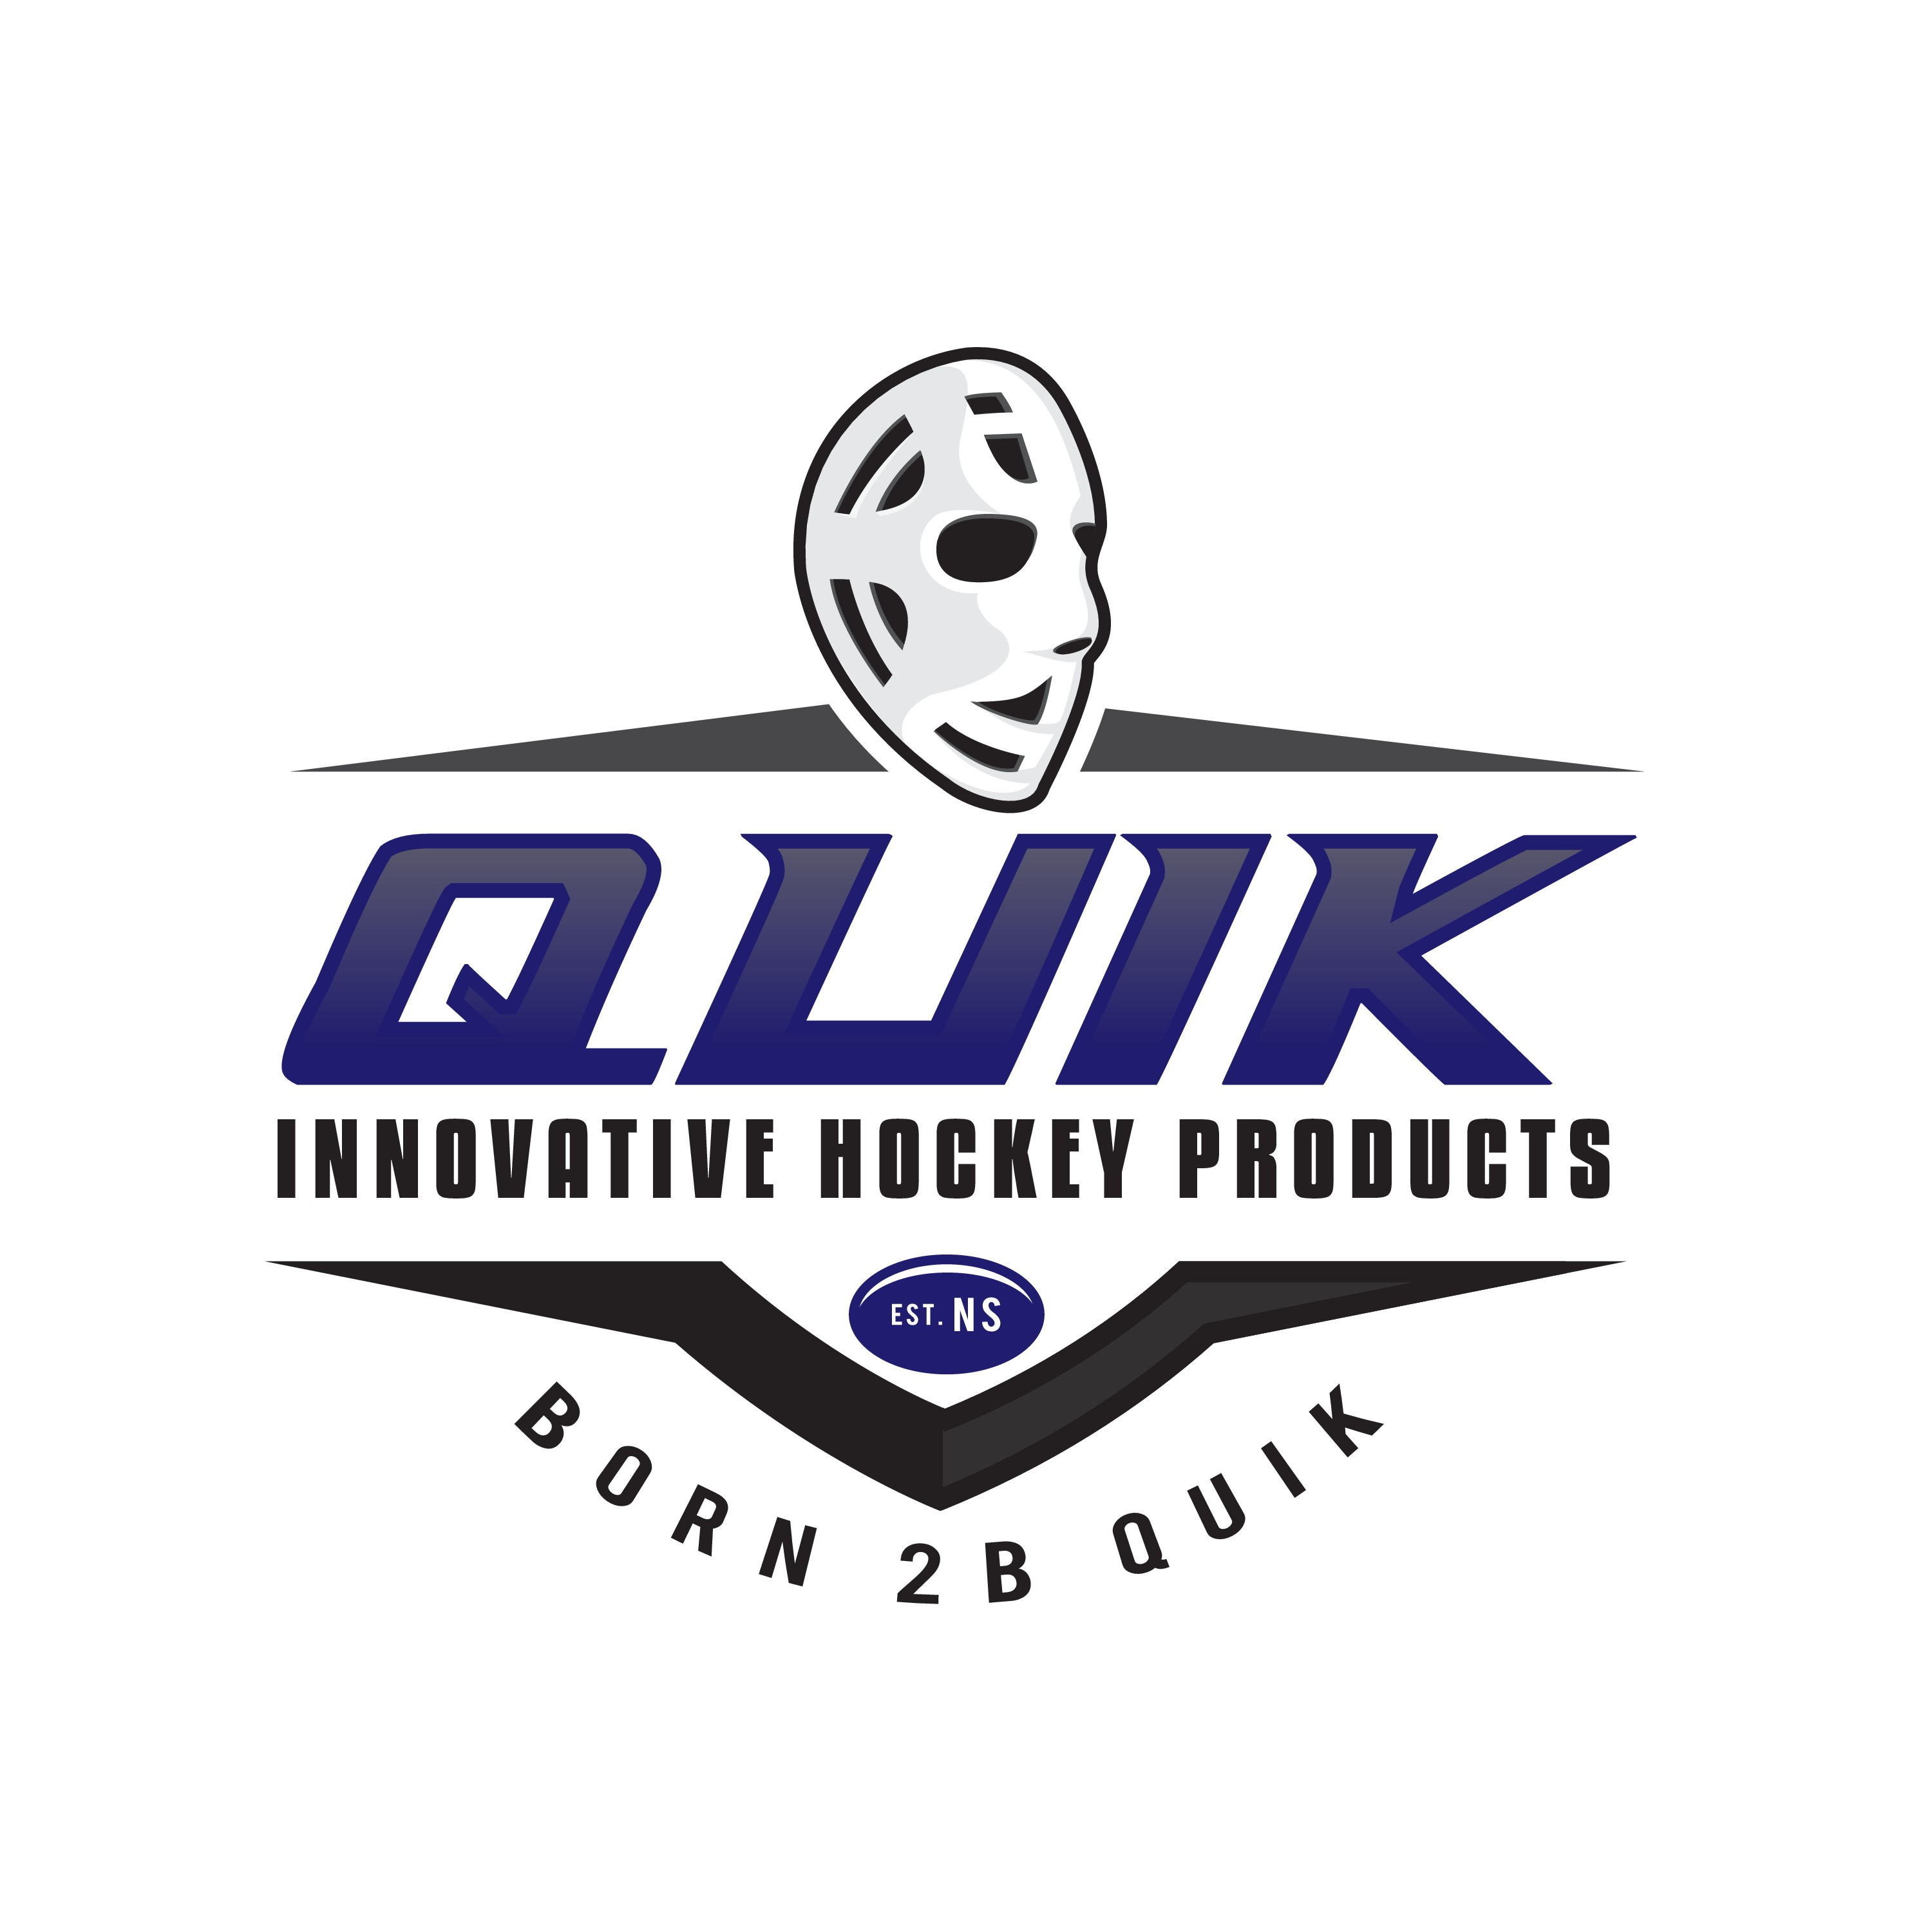 "Inspire Goaltenders Across North America and Around the World. Build our Brand.""Quik"". -"